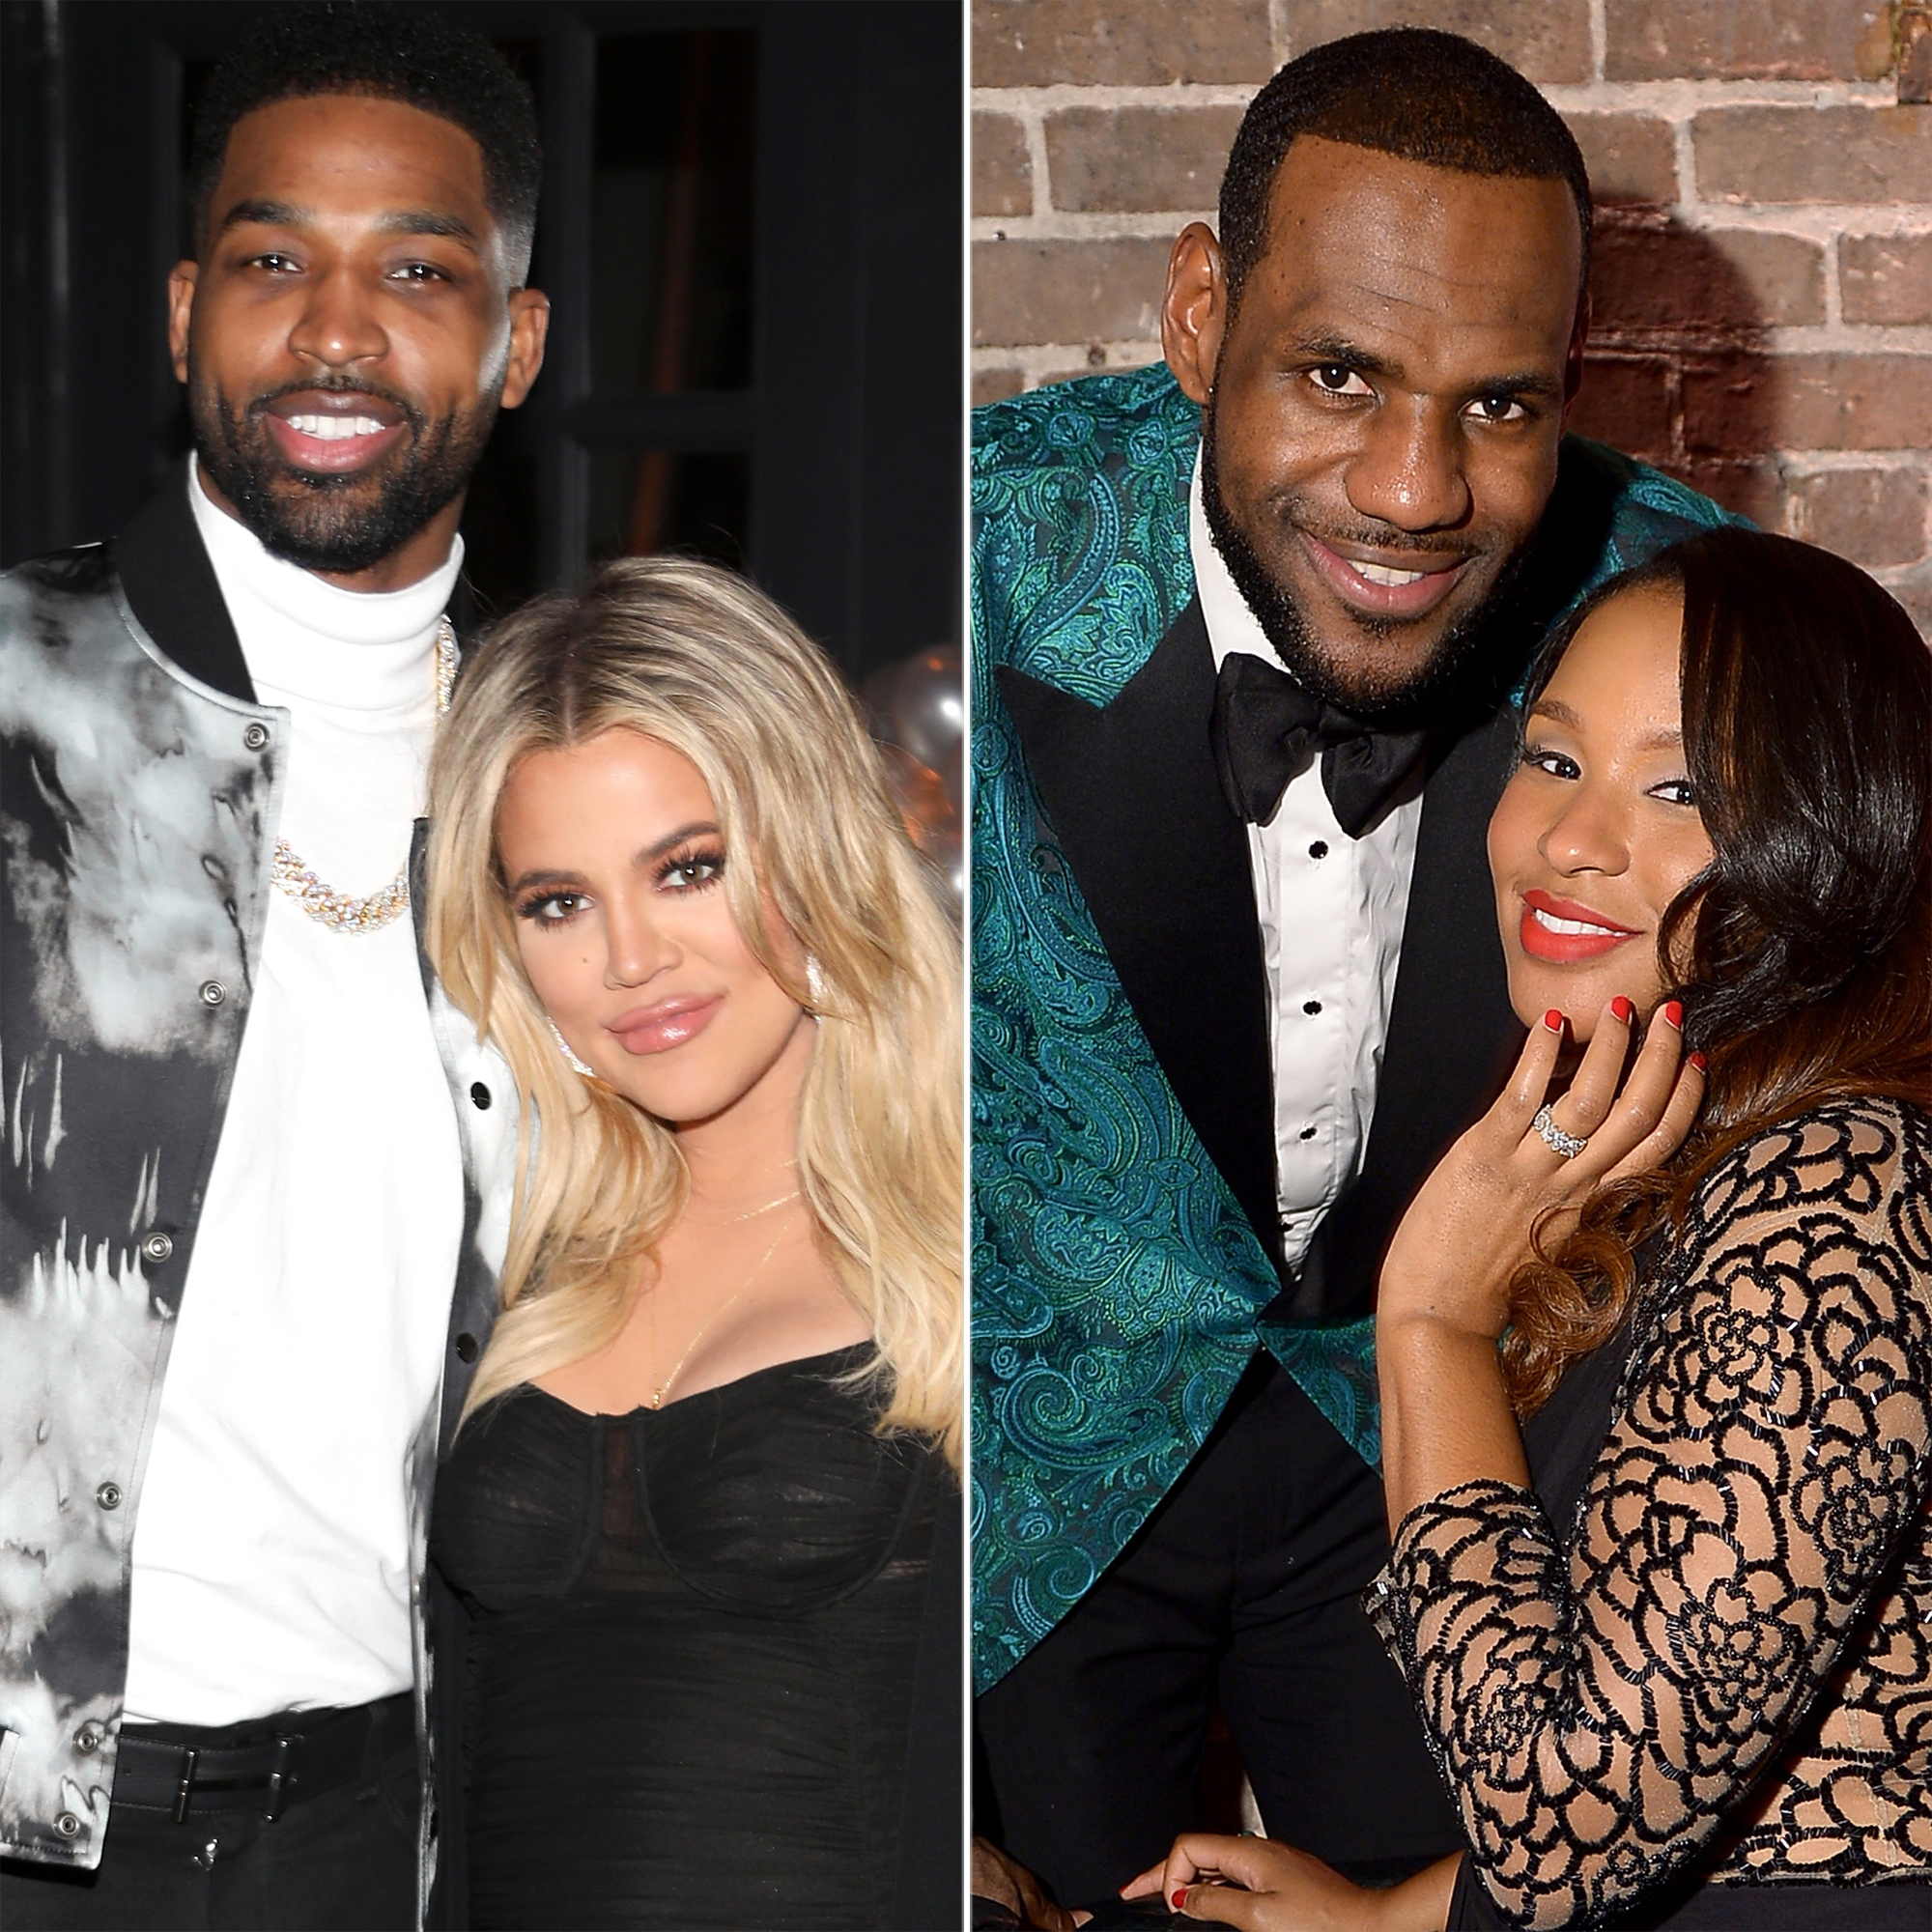 78275527ef6d Khloe Kardashian and Tristan Thompson Double Date With LeBron James